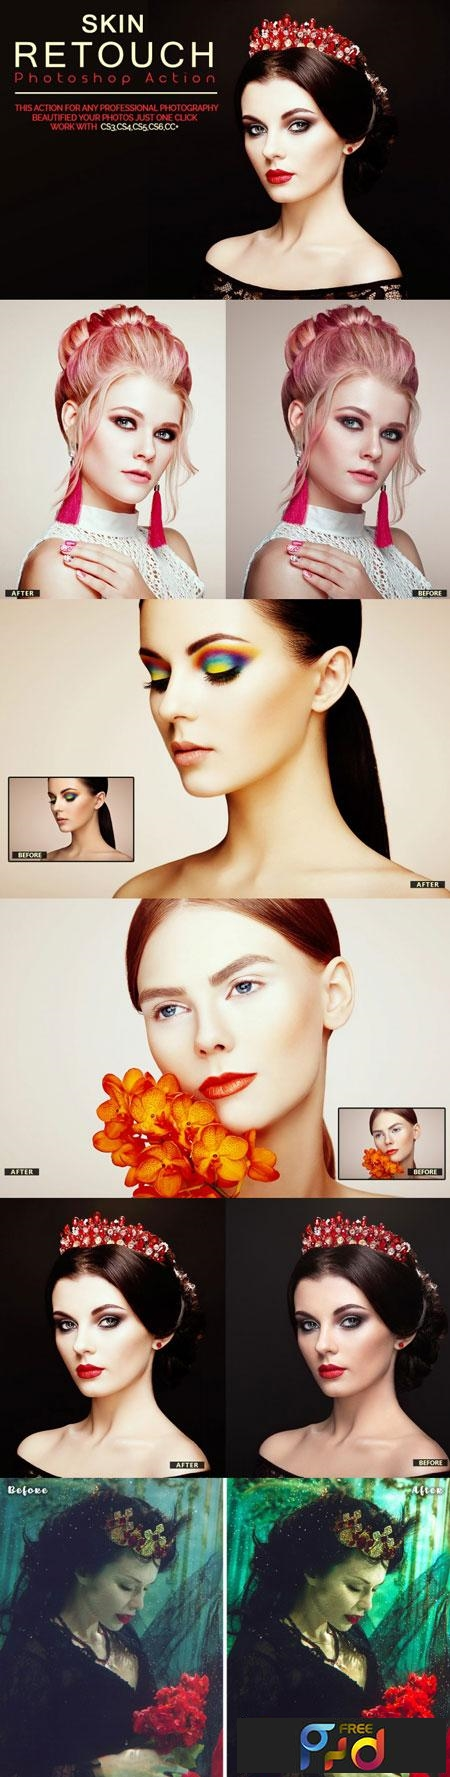 Skin Retouch Photoshop Action 3509467 1